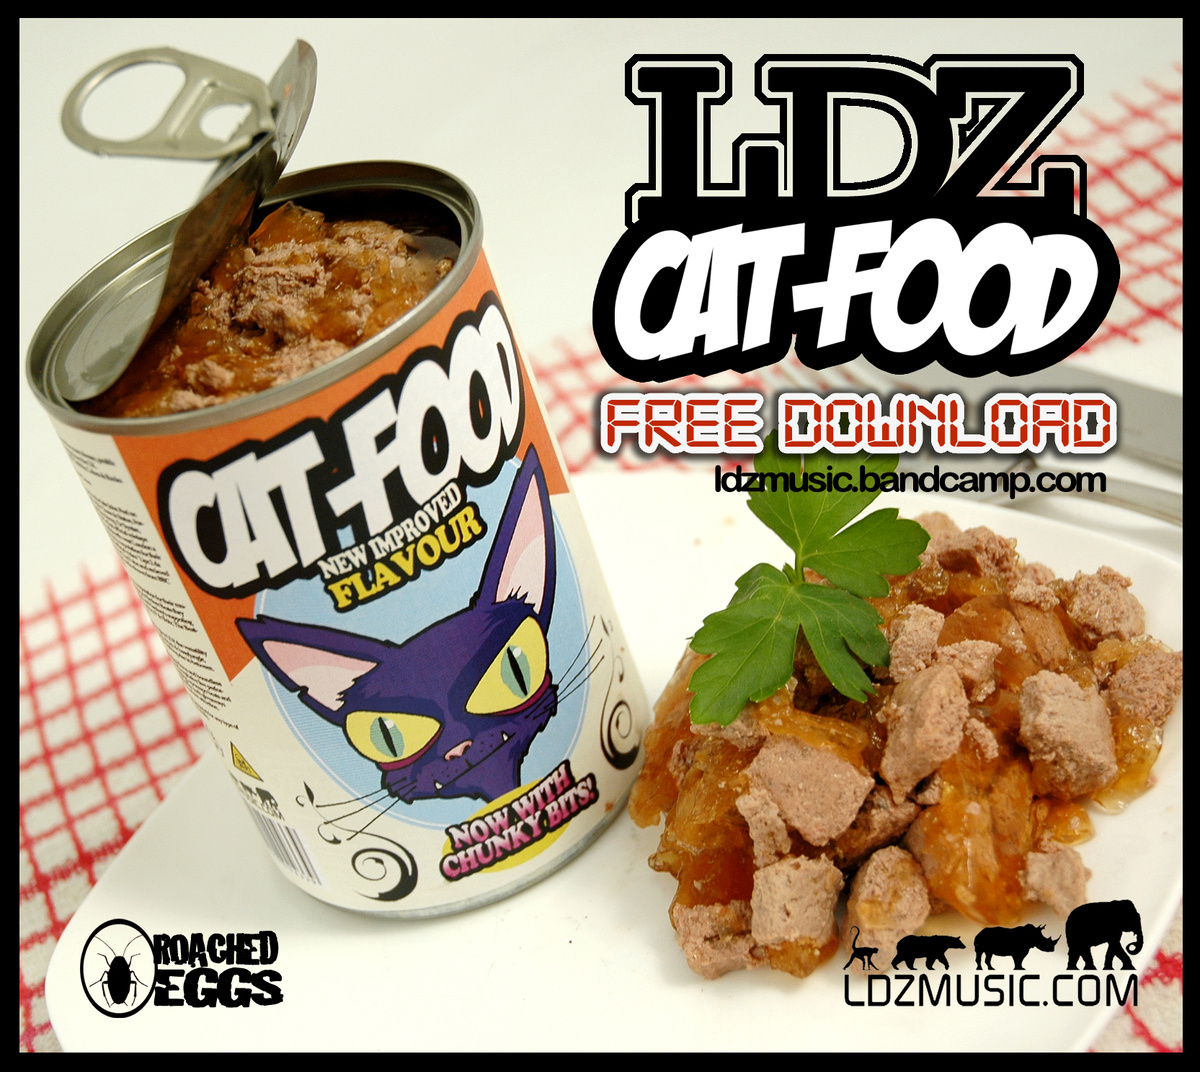 Catfood L.P.